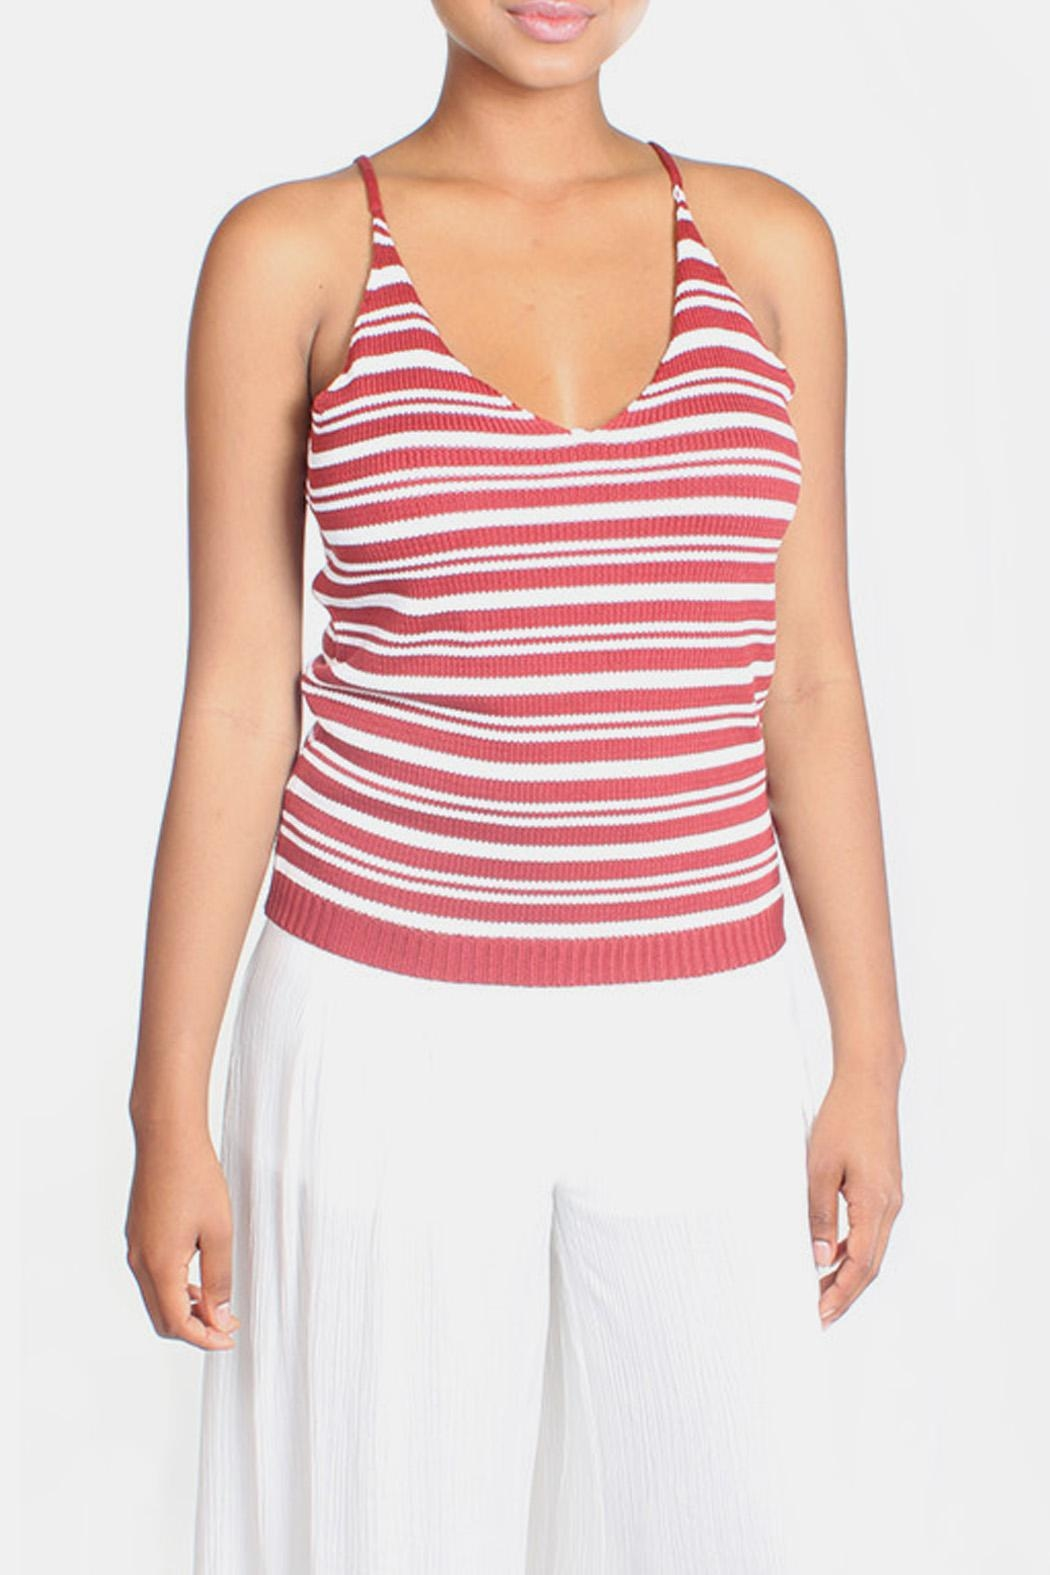 Lumiere Red Knit Striped Top - Front Full Image